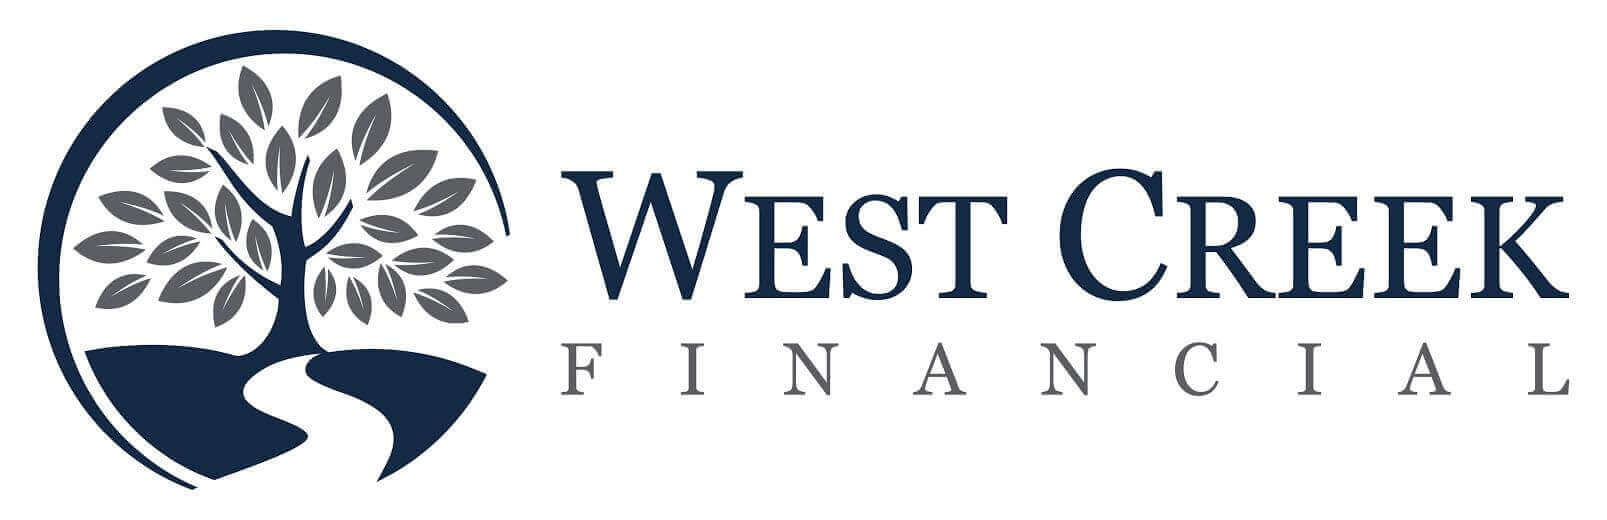 Special Financing Available through West Creek Financial